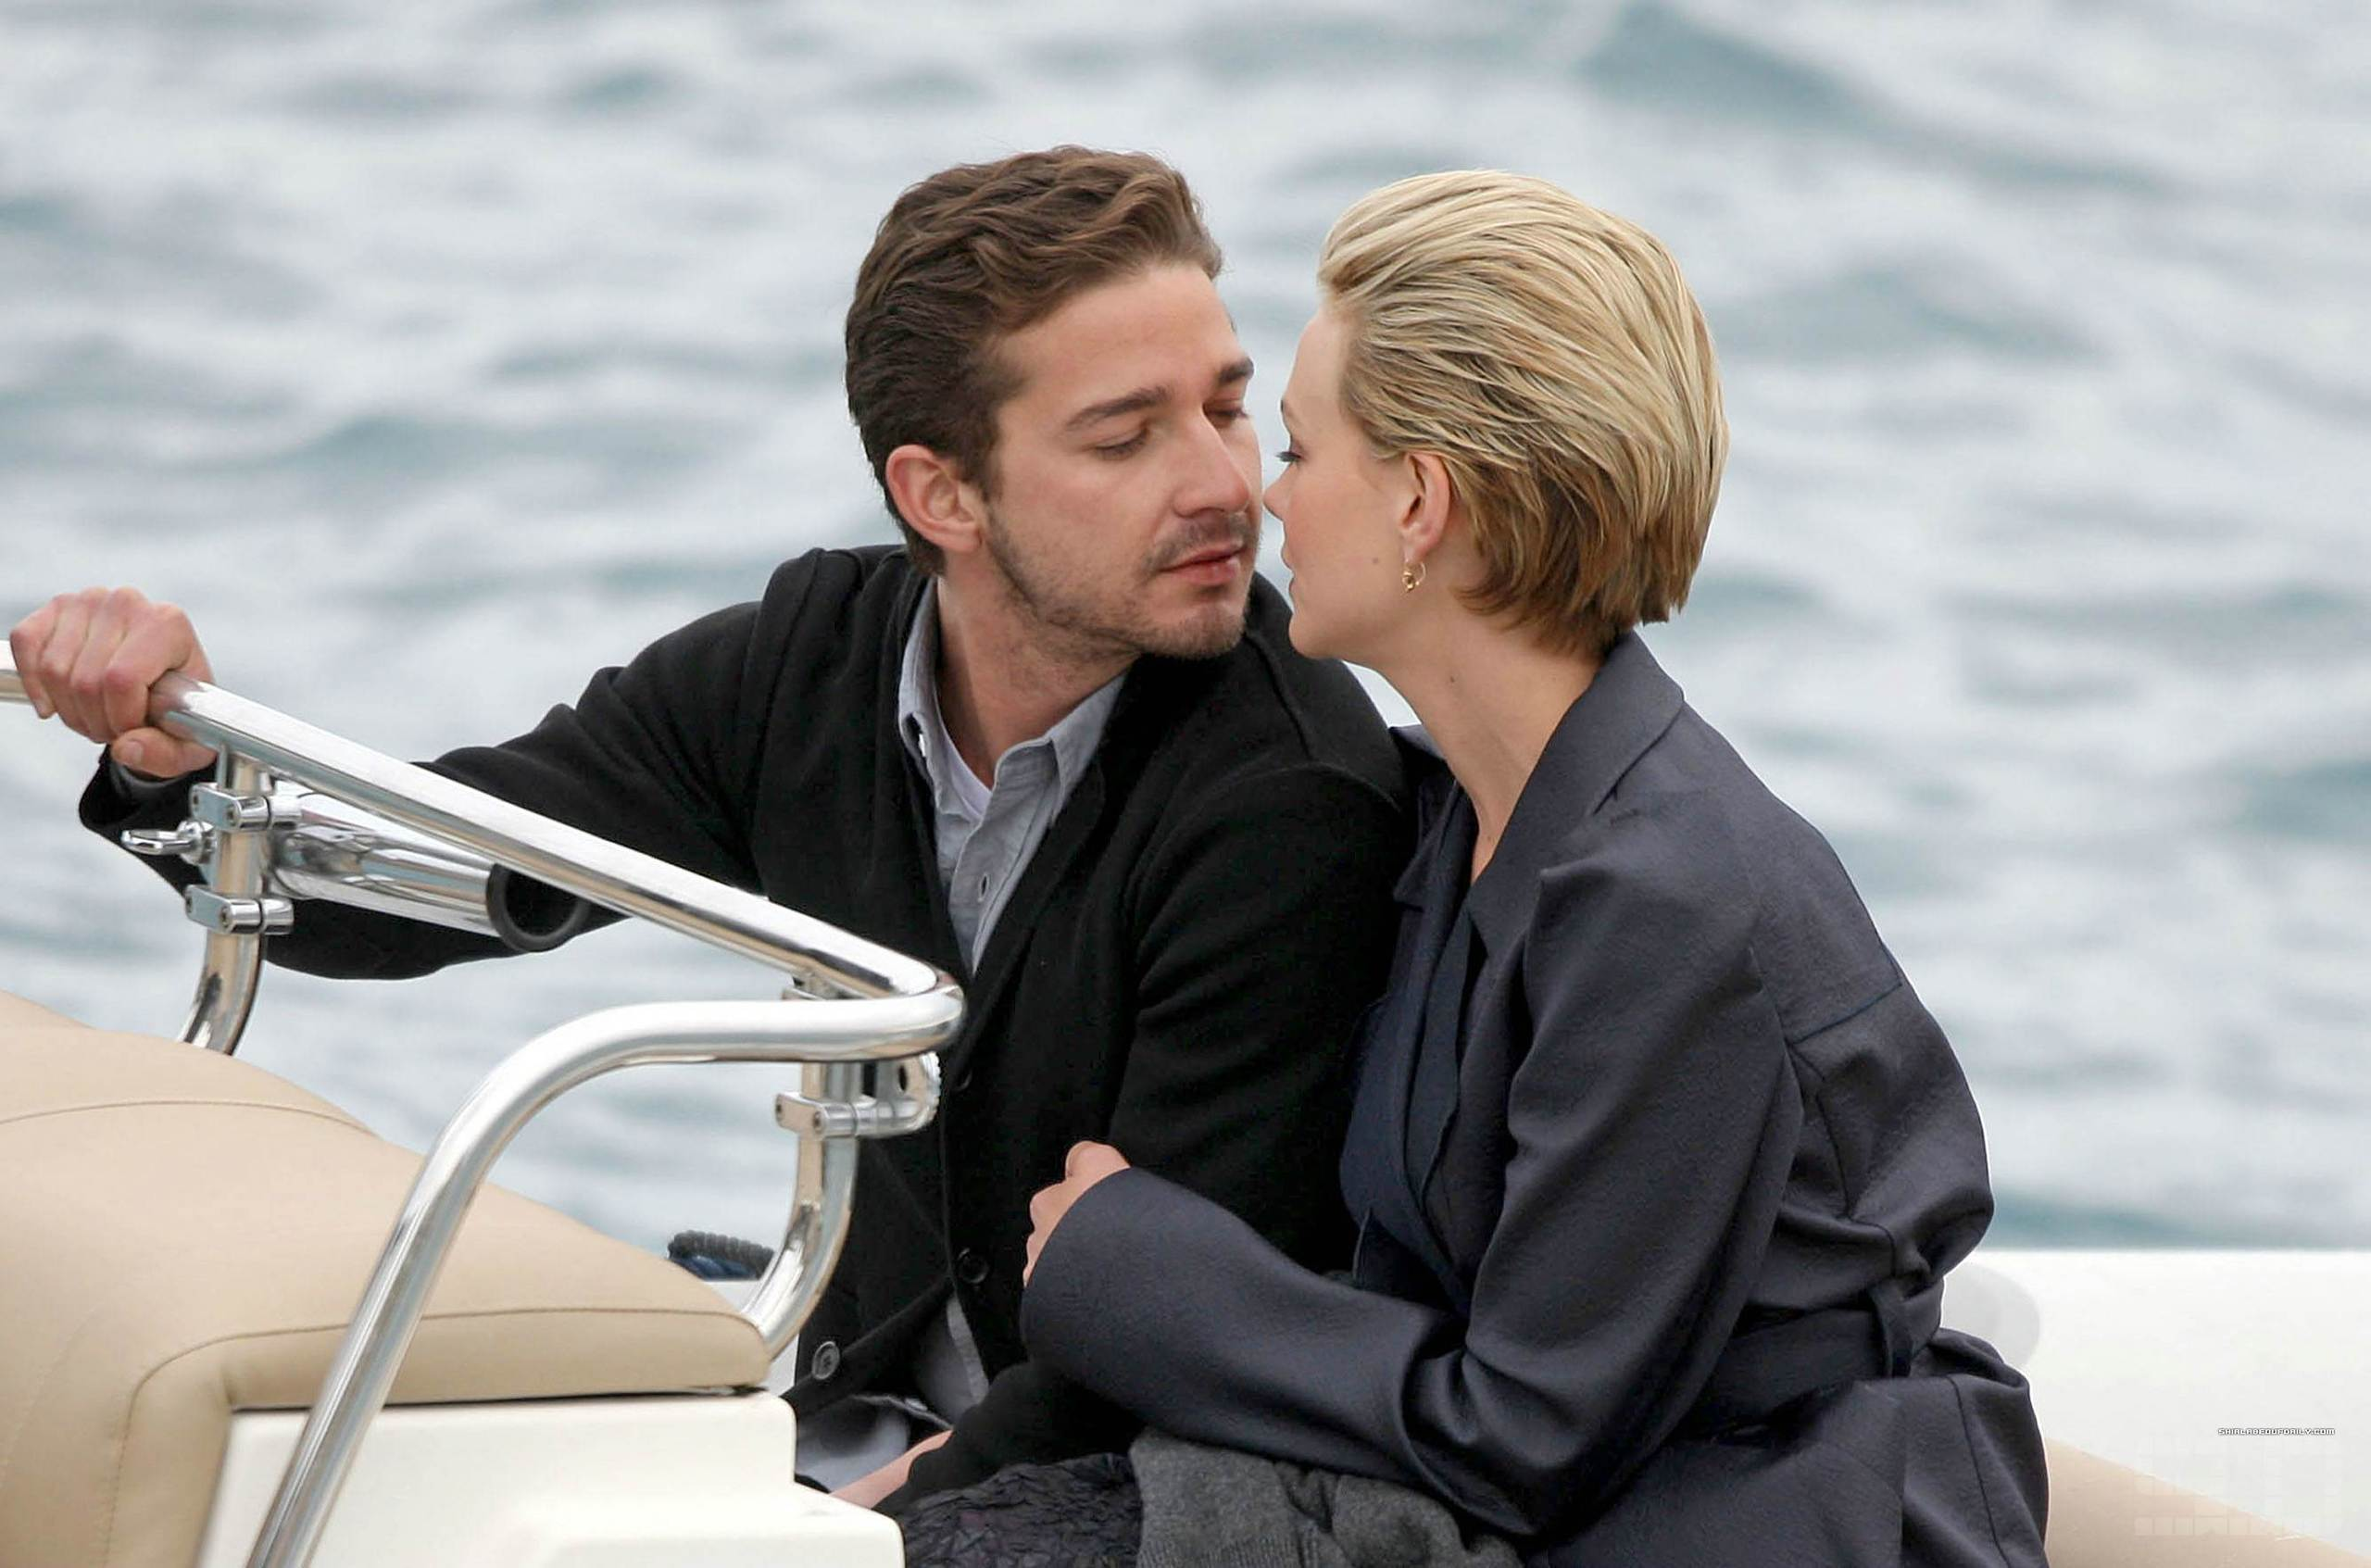 Shia Labeouf And Carey Mulligan Images In Venice May 14 HD Wallpaper Background Photos